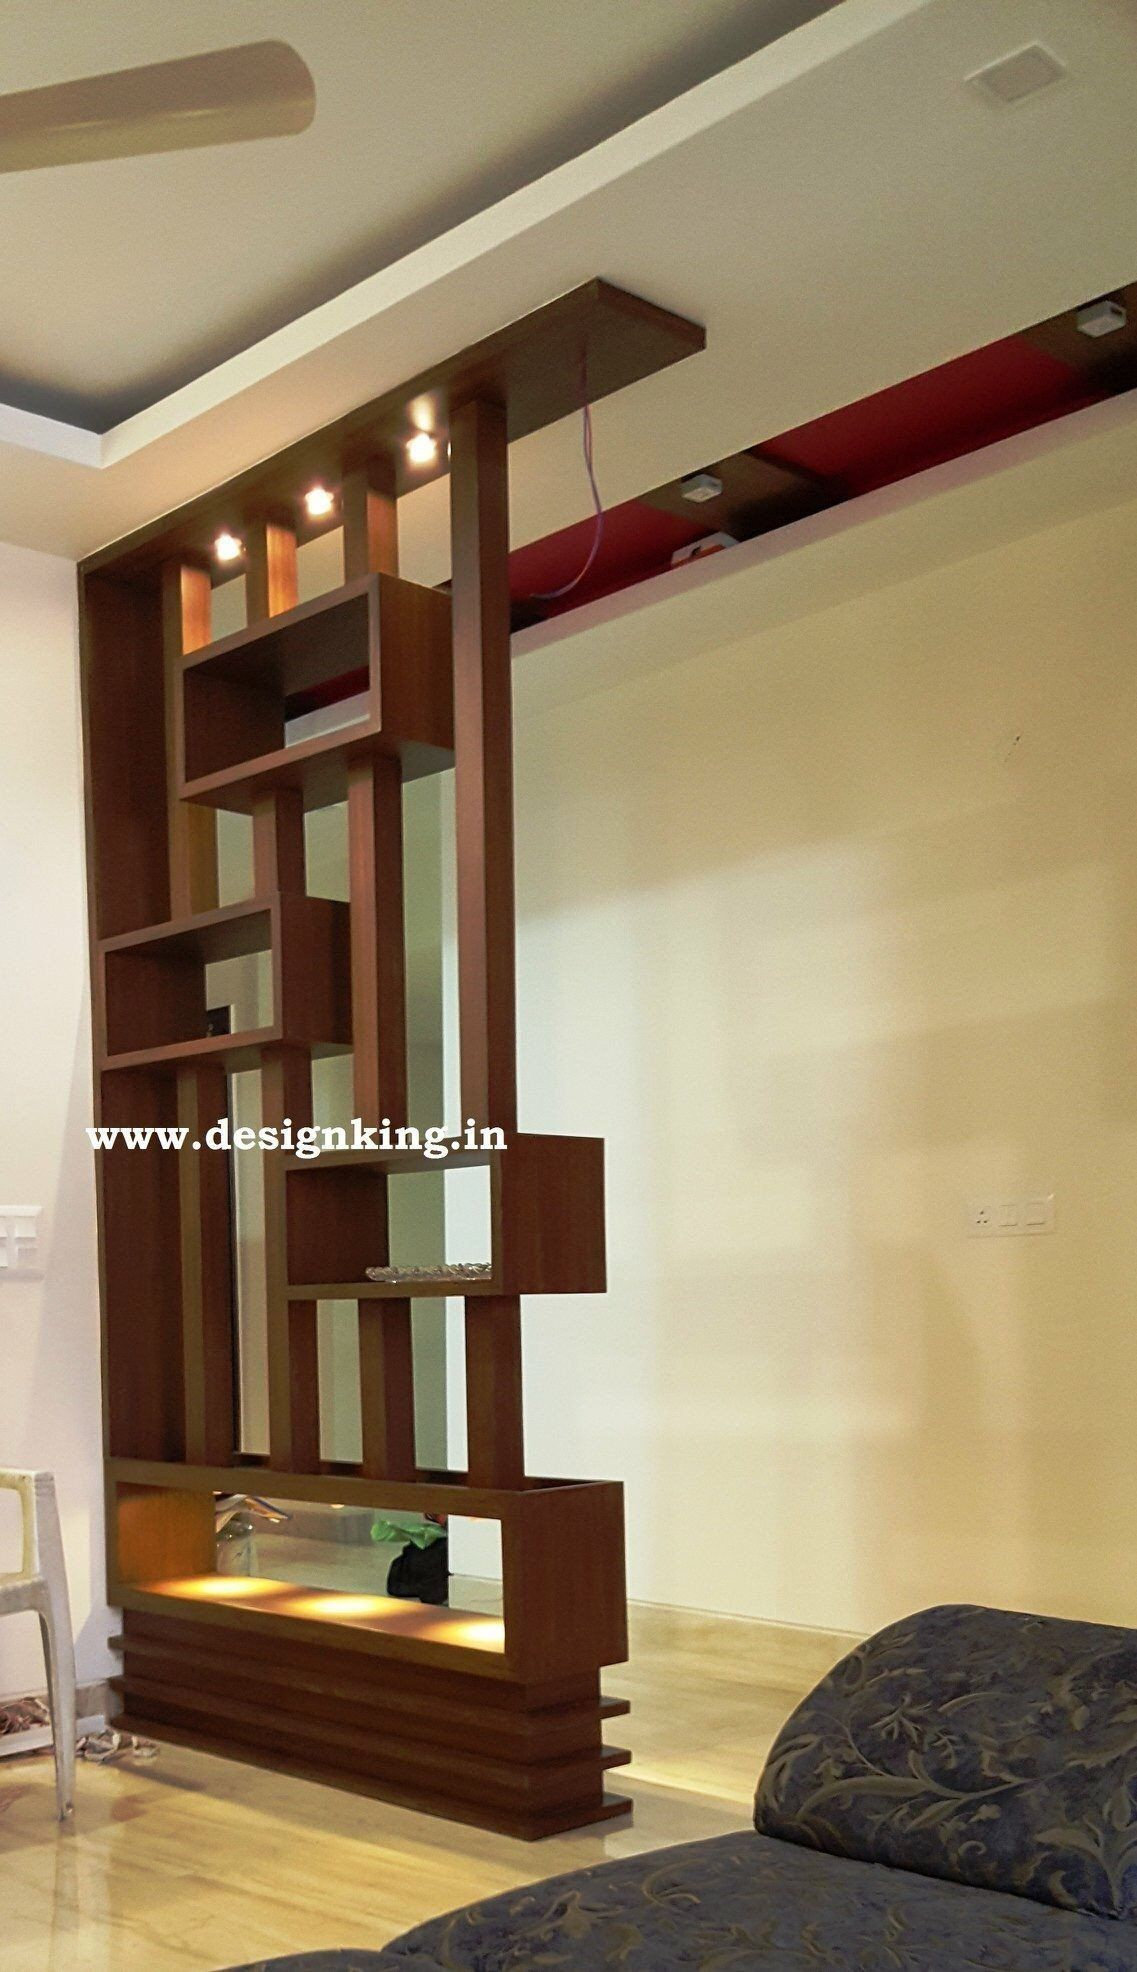 Modern Living Room Cabinet Designs 38 Amazing Partition ...